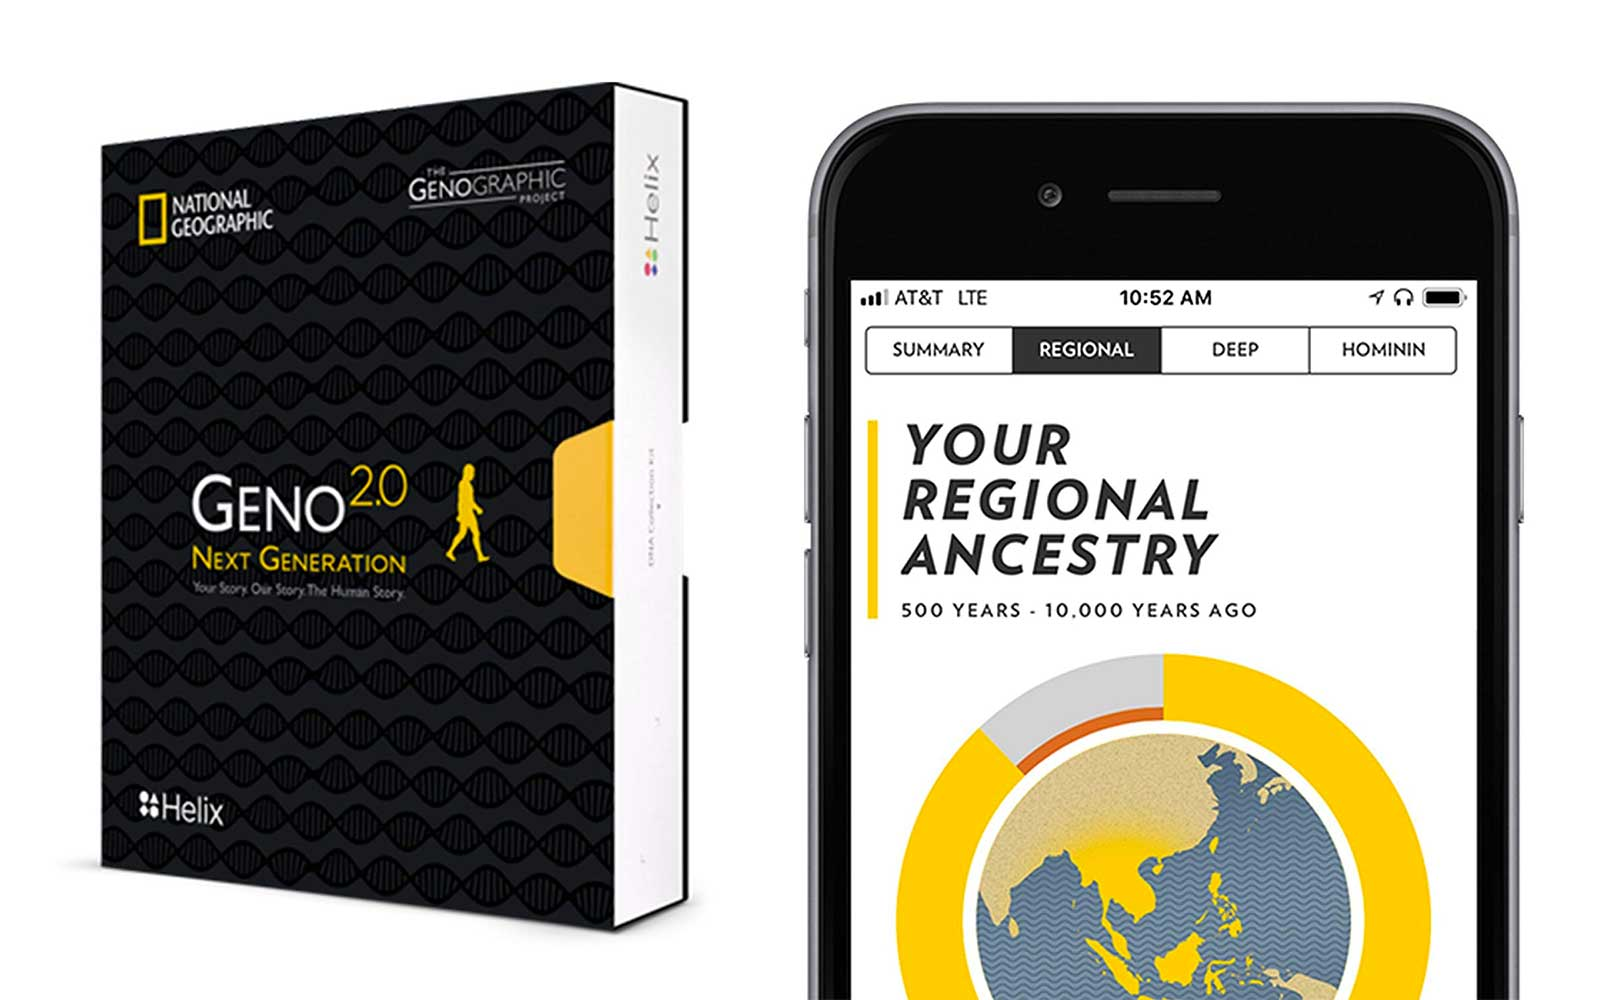 NatGeo DNA testing kit for sale on Amazon